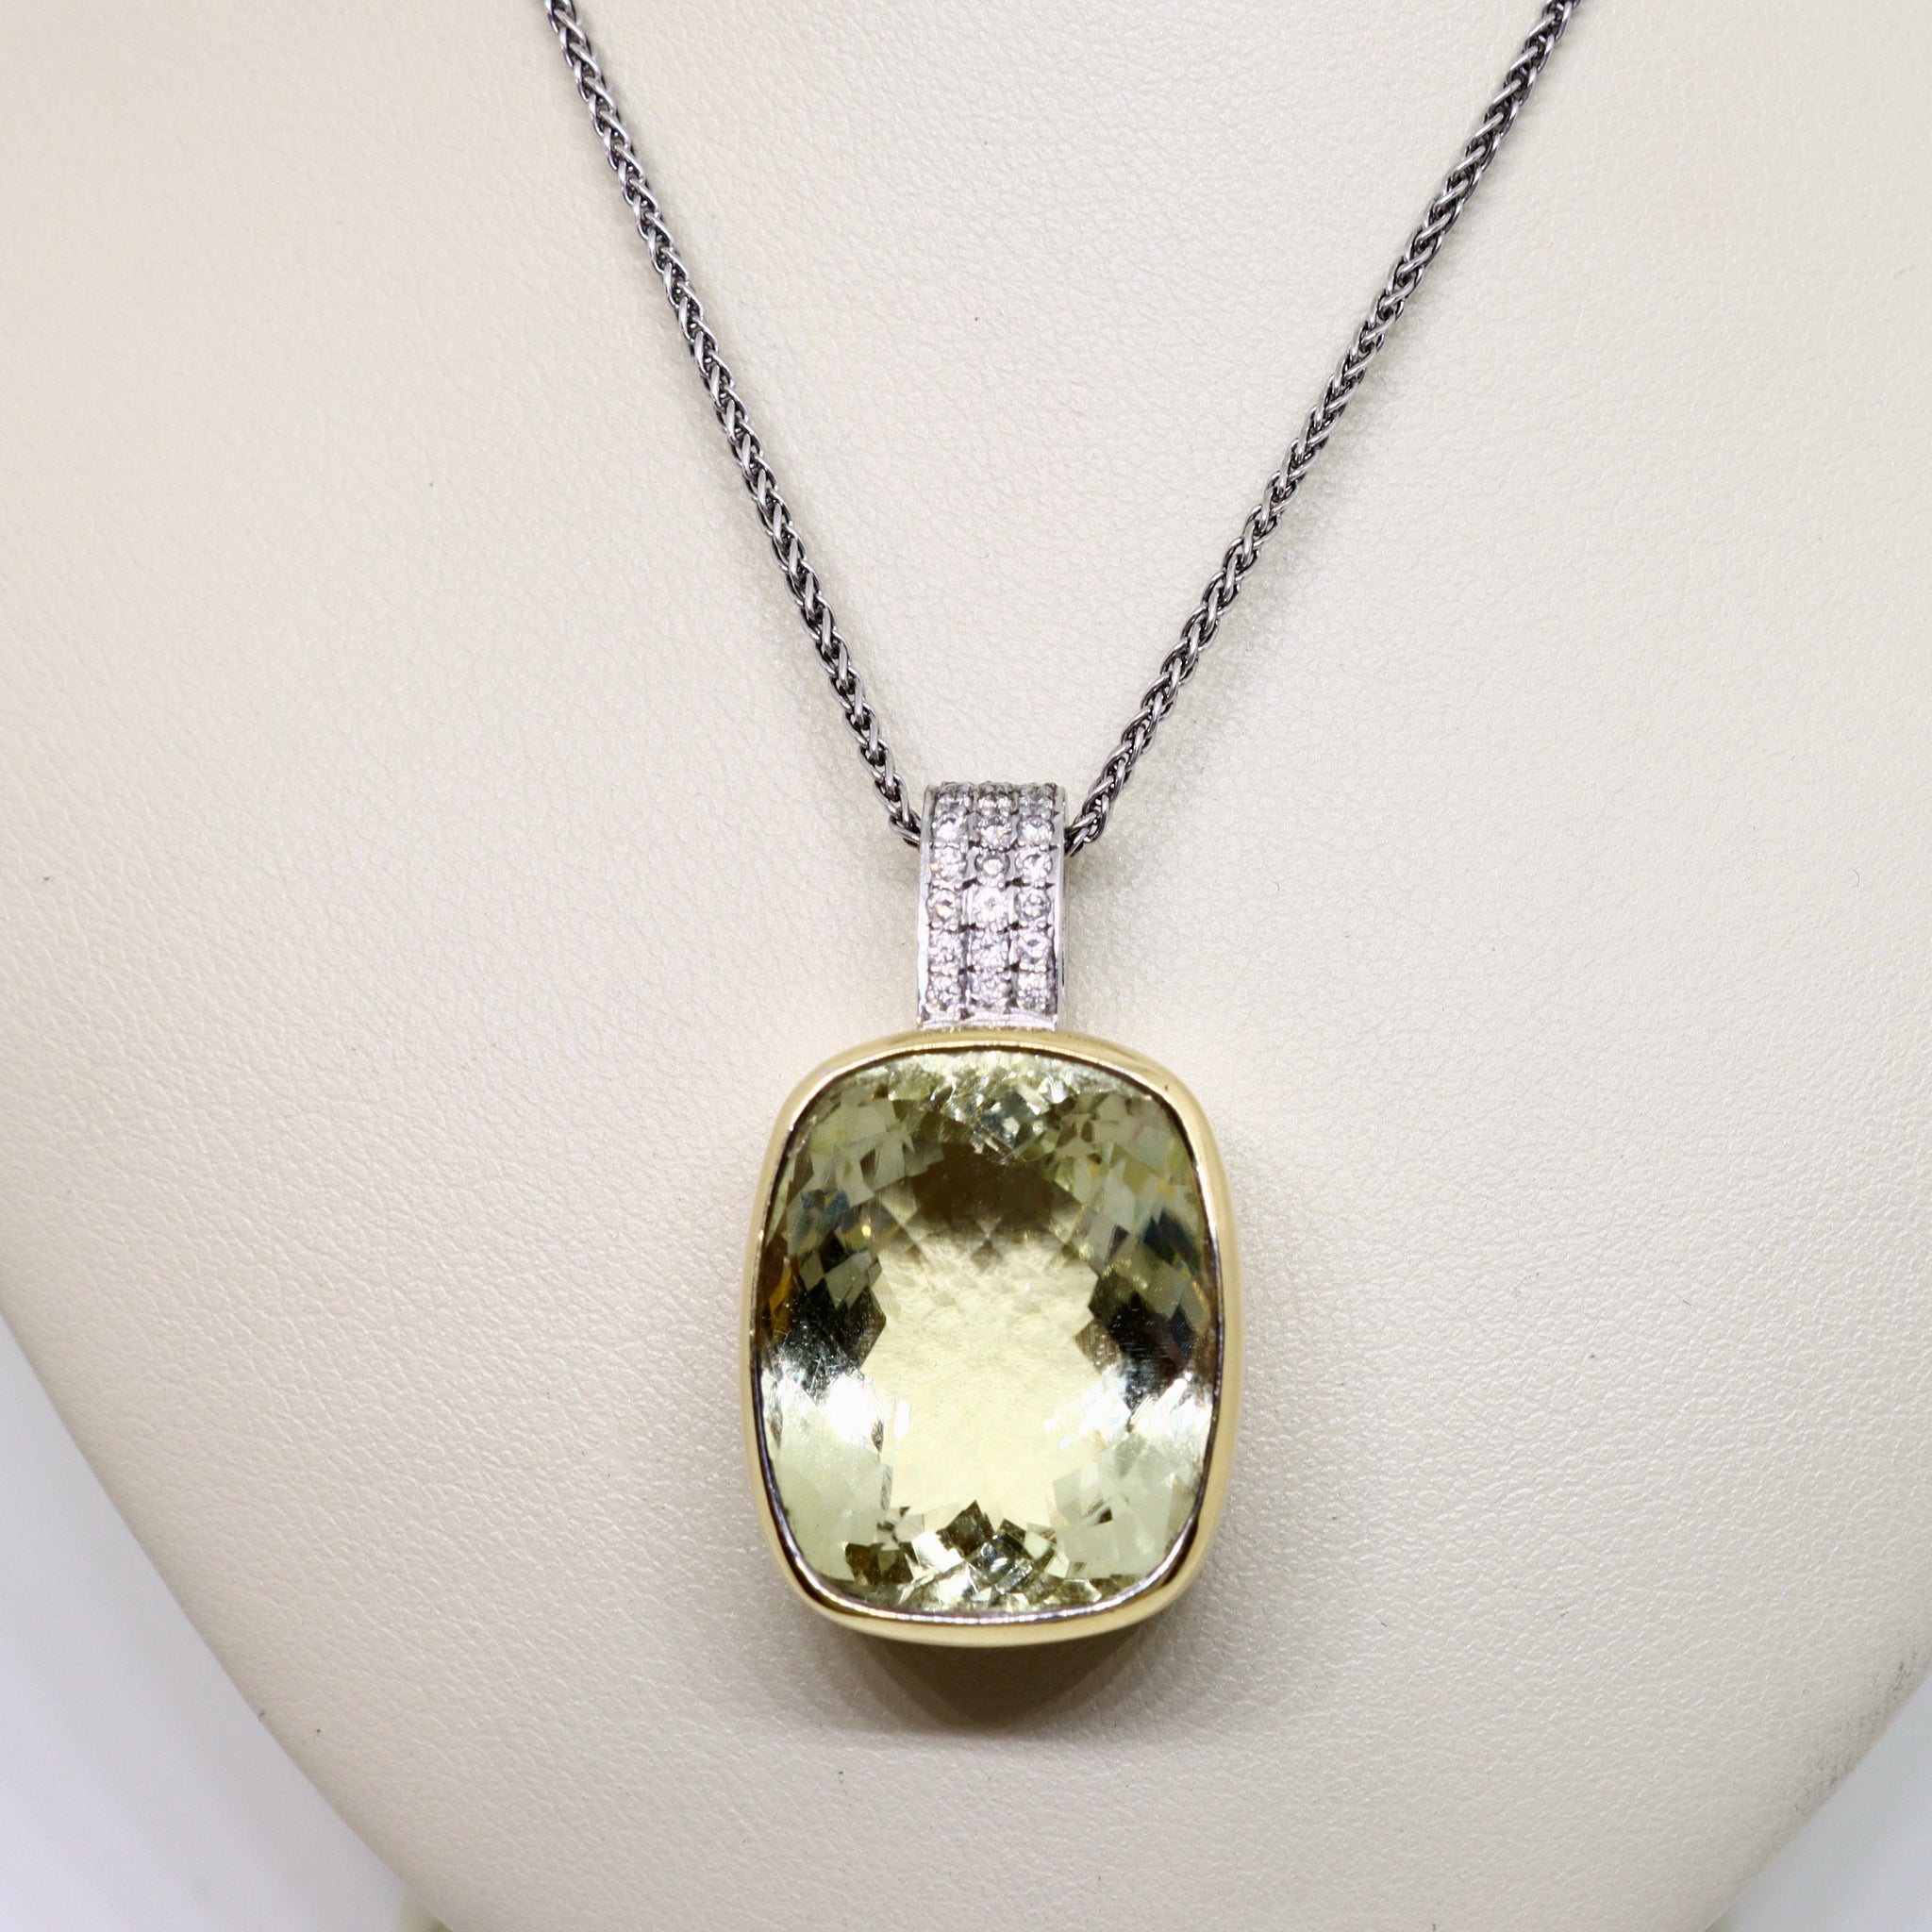 Lemon Citrine and diamond pendant